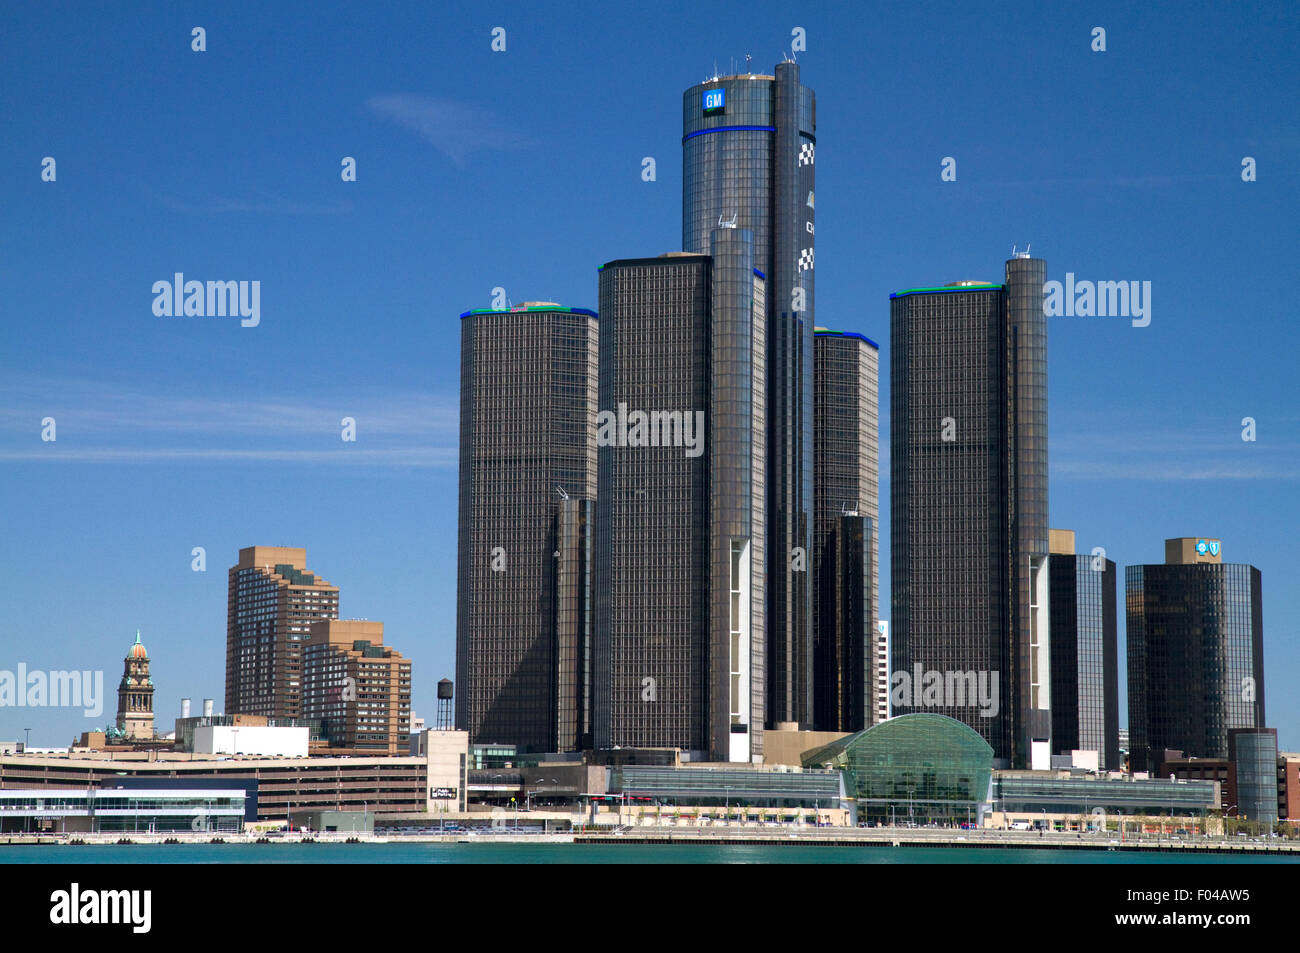 The GM Renaissance Center on the Detroit International Riverfront, Michigan, USA. - Stock Image